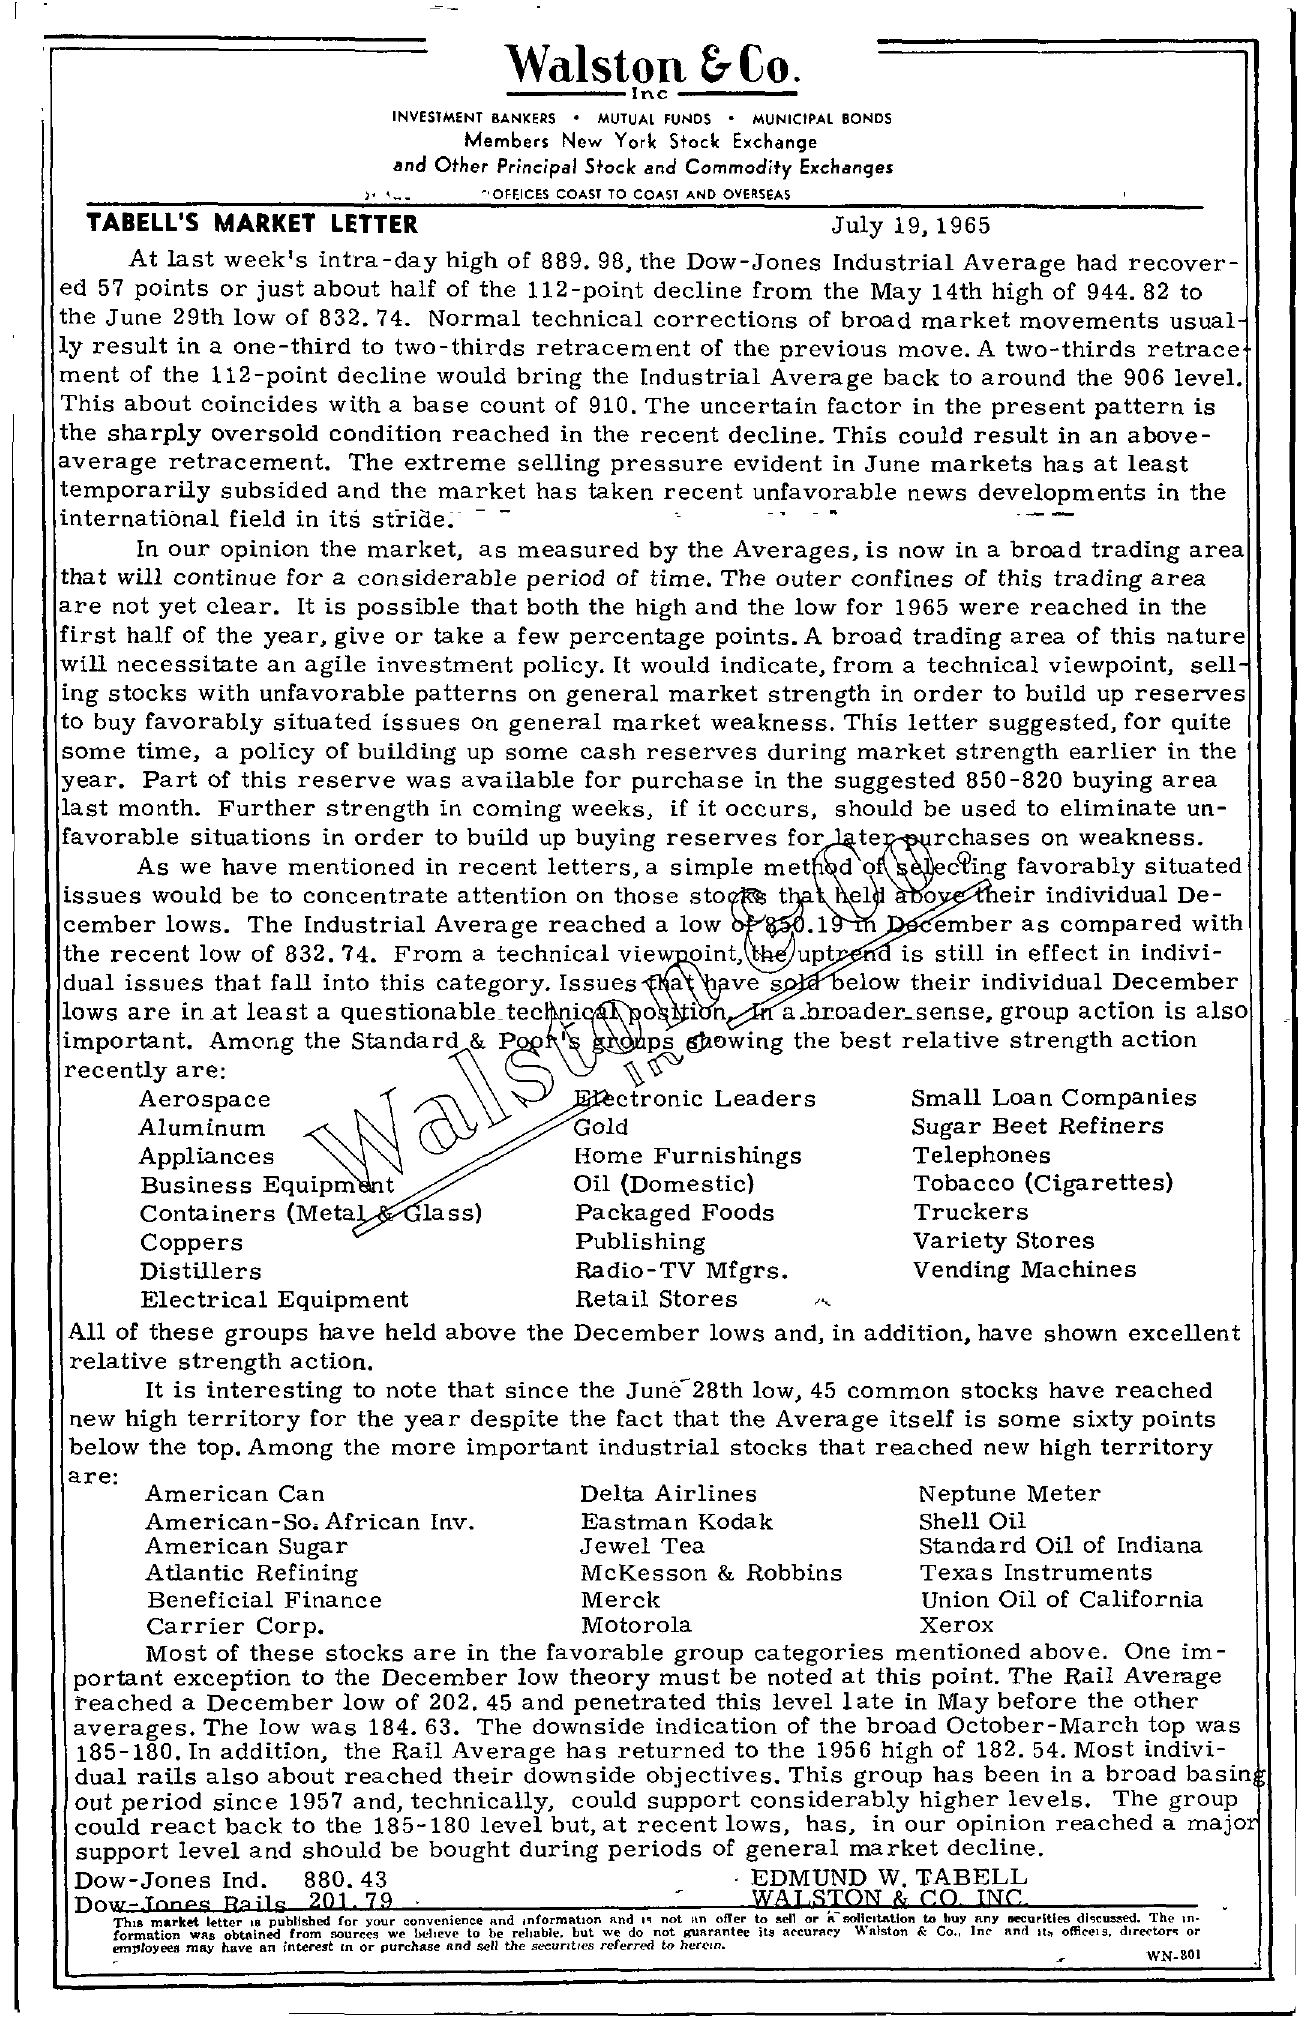 Tabell's Market Letter - July 19, 1965